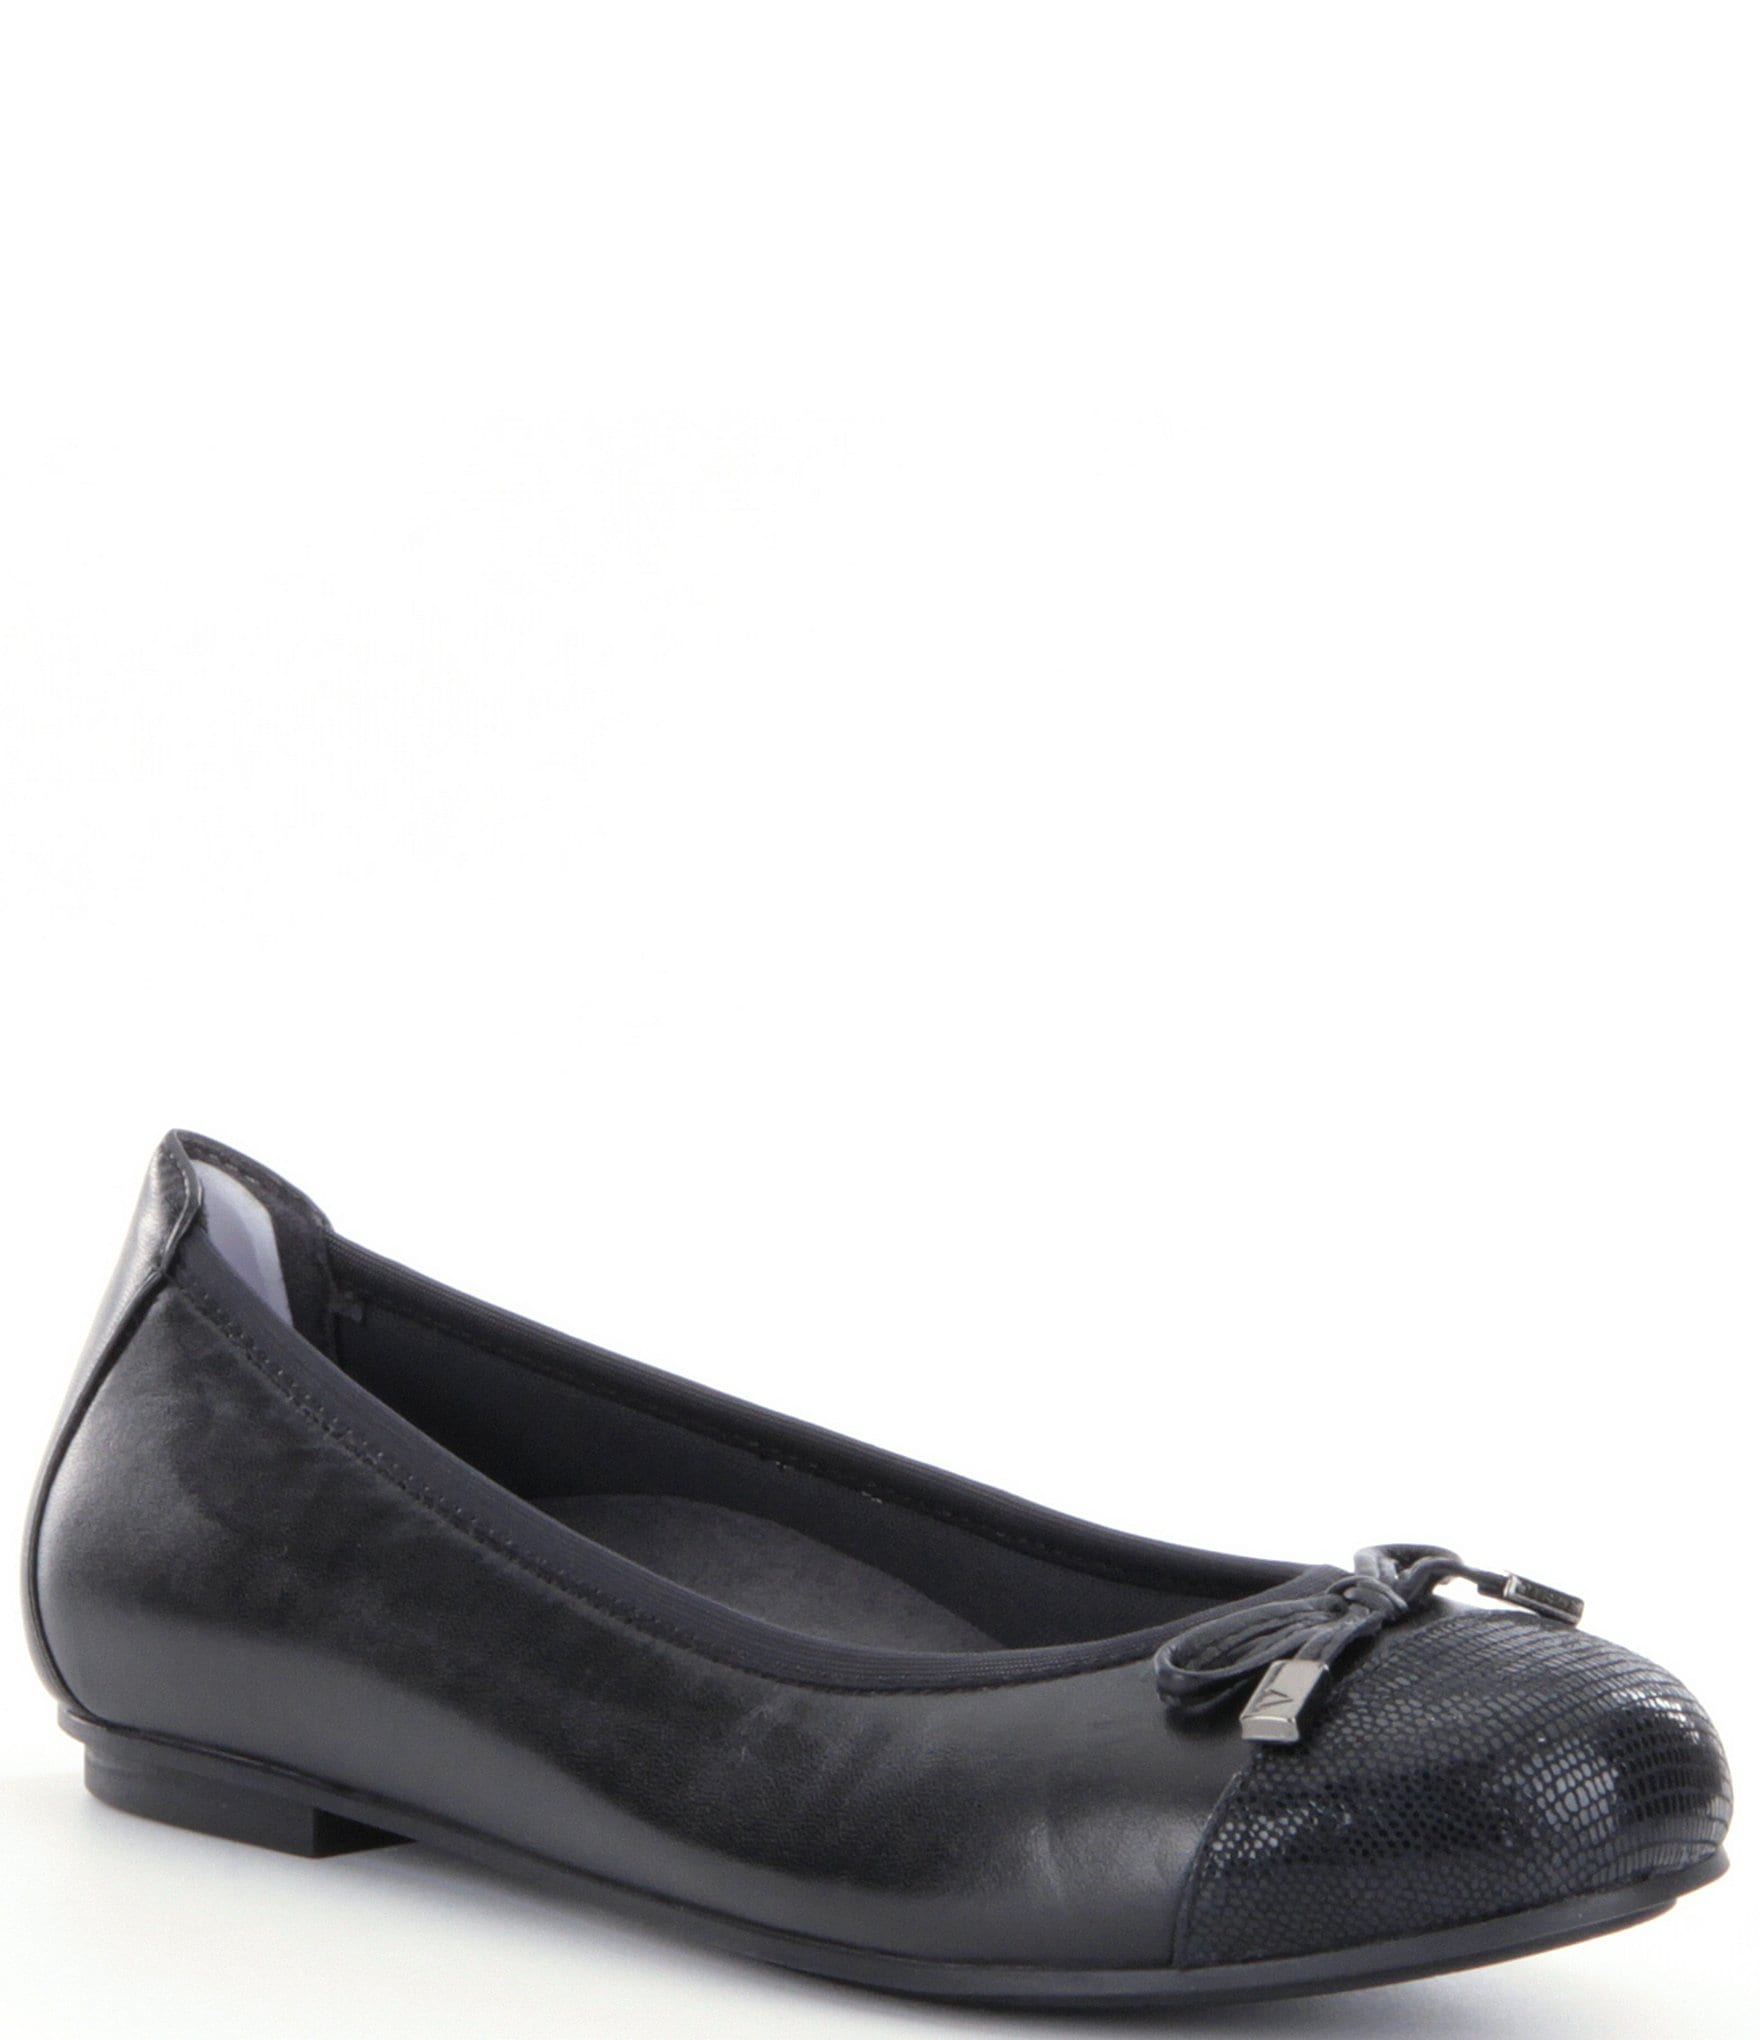 Black suedette flat shoes with patent toe cap and bow B7Zr9pQ2S